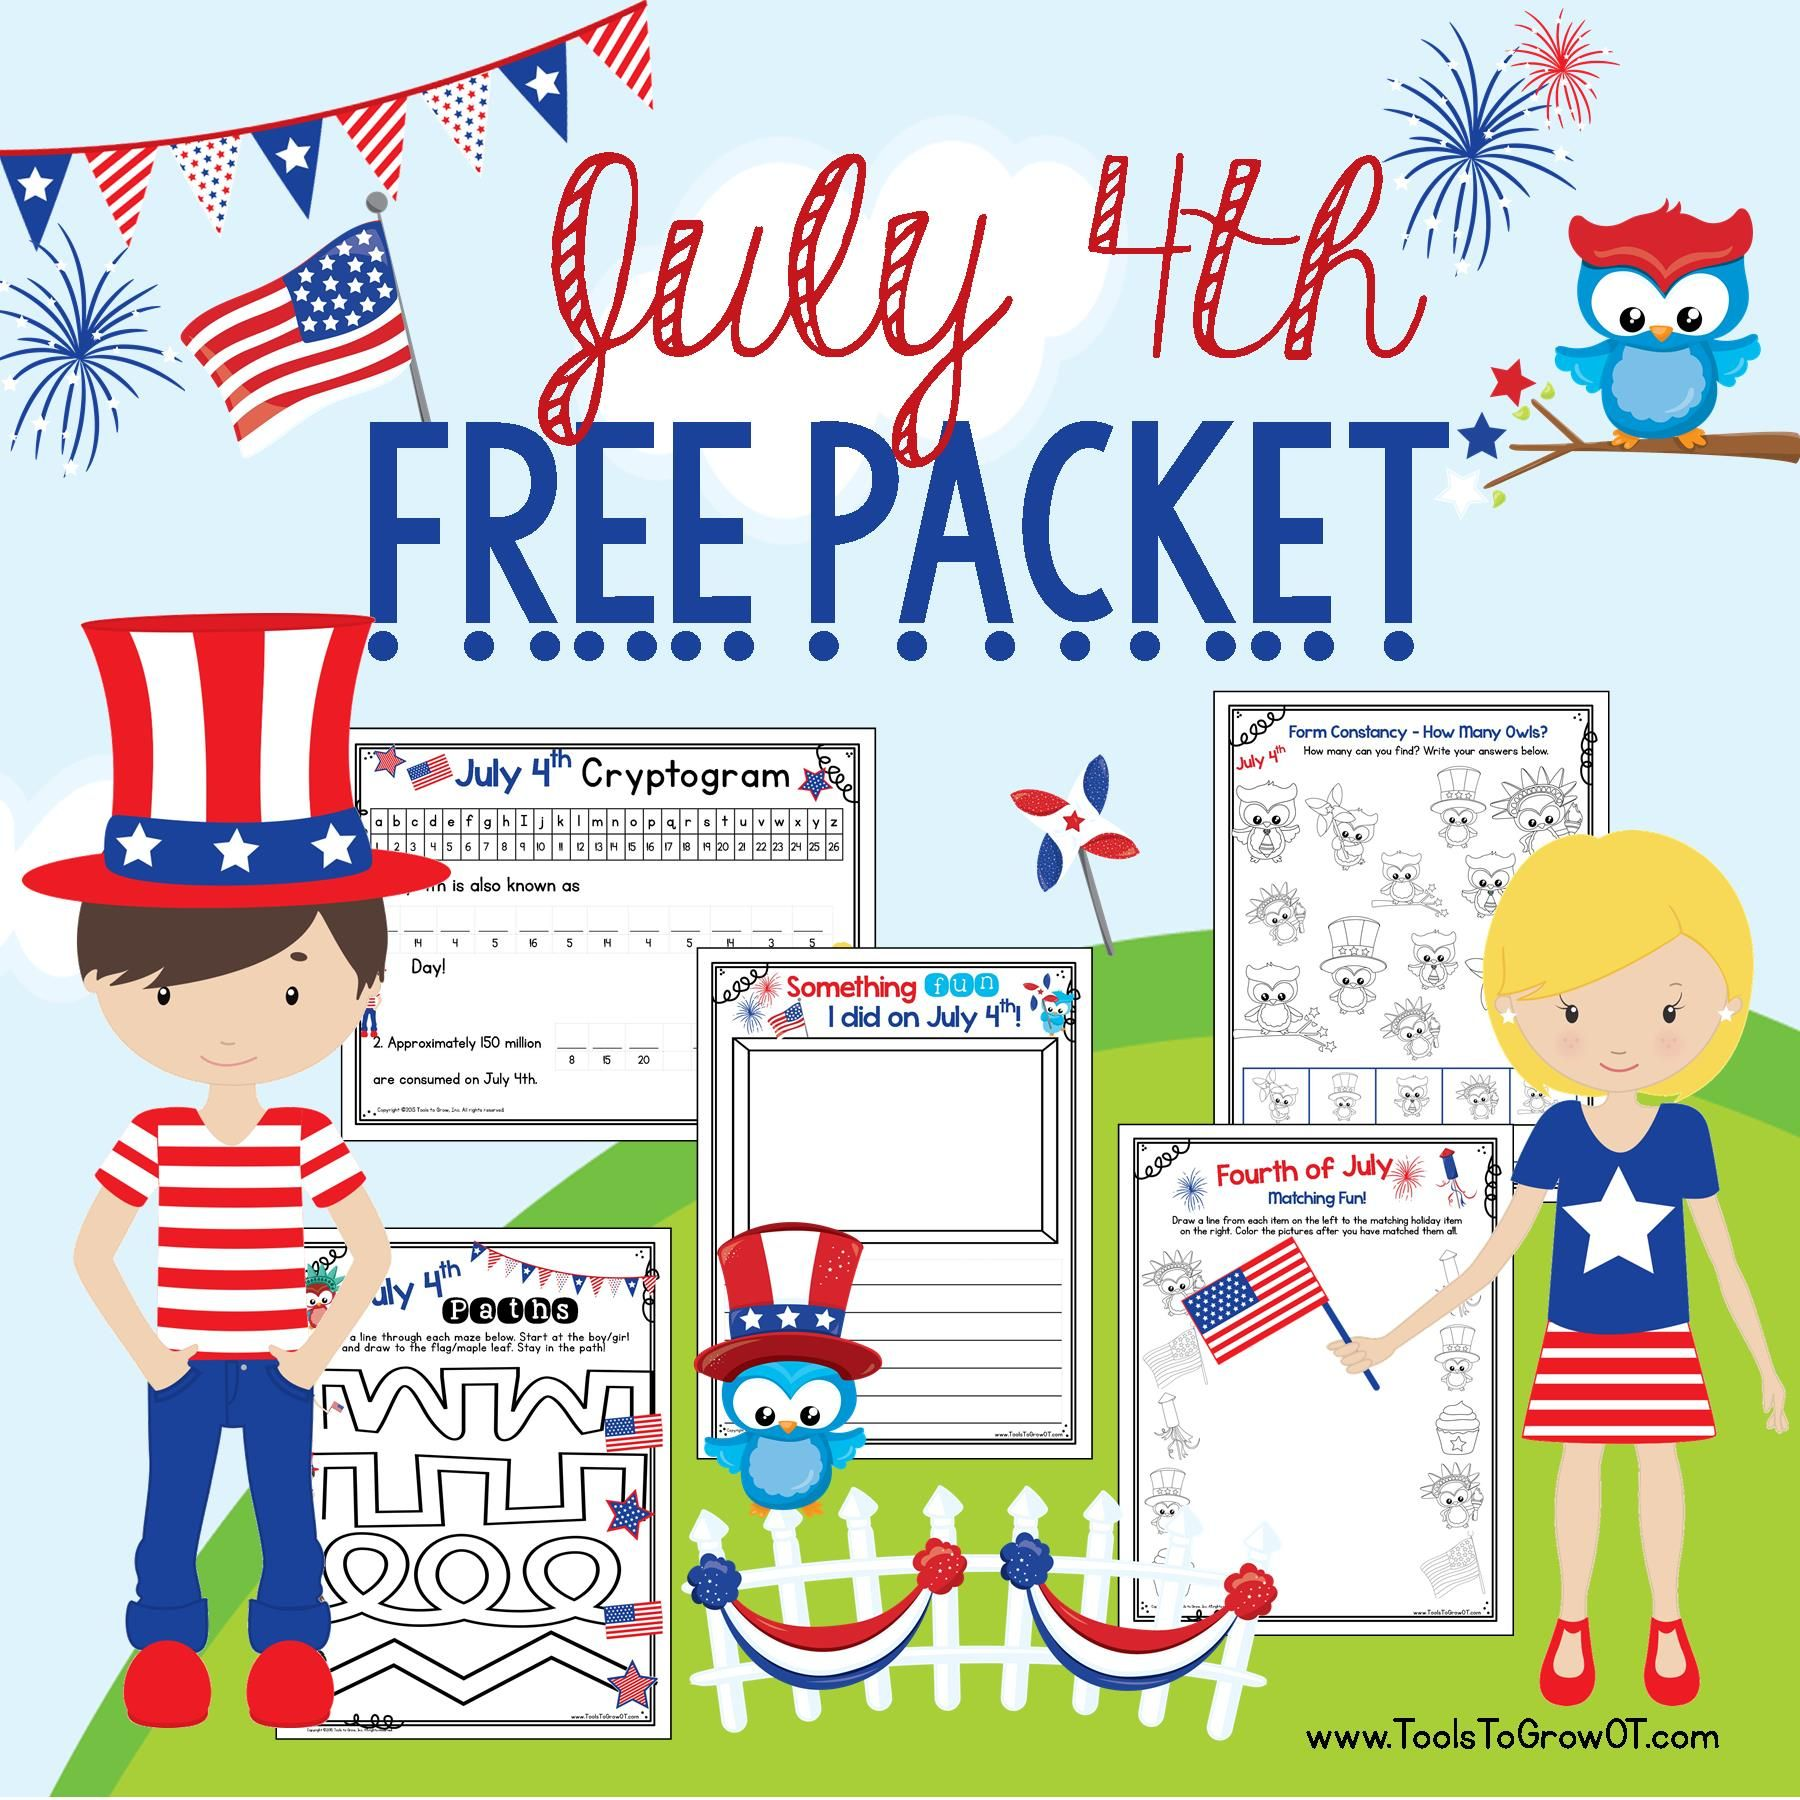 Free July 4th Packet Includes Fourth Of July Handwriting Page Maze Paths Cryptogram Form Co